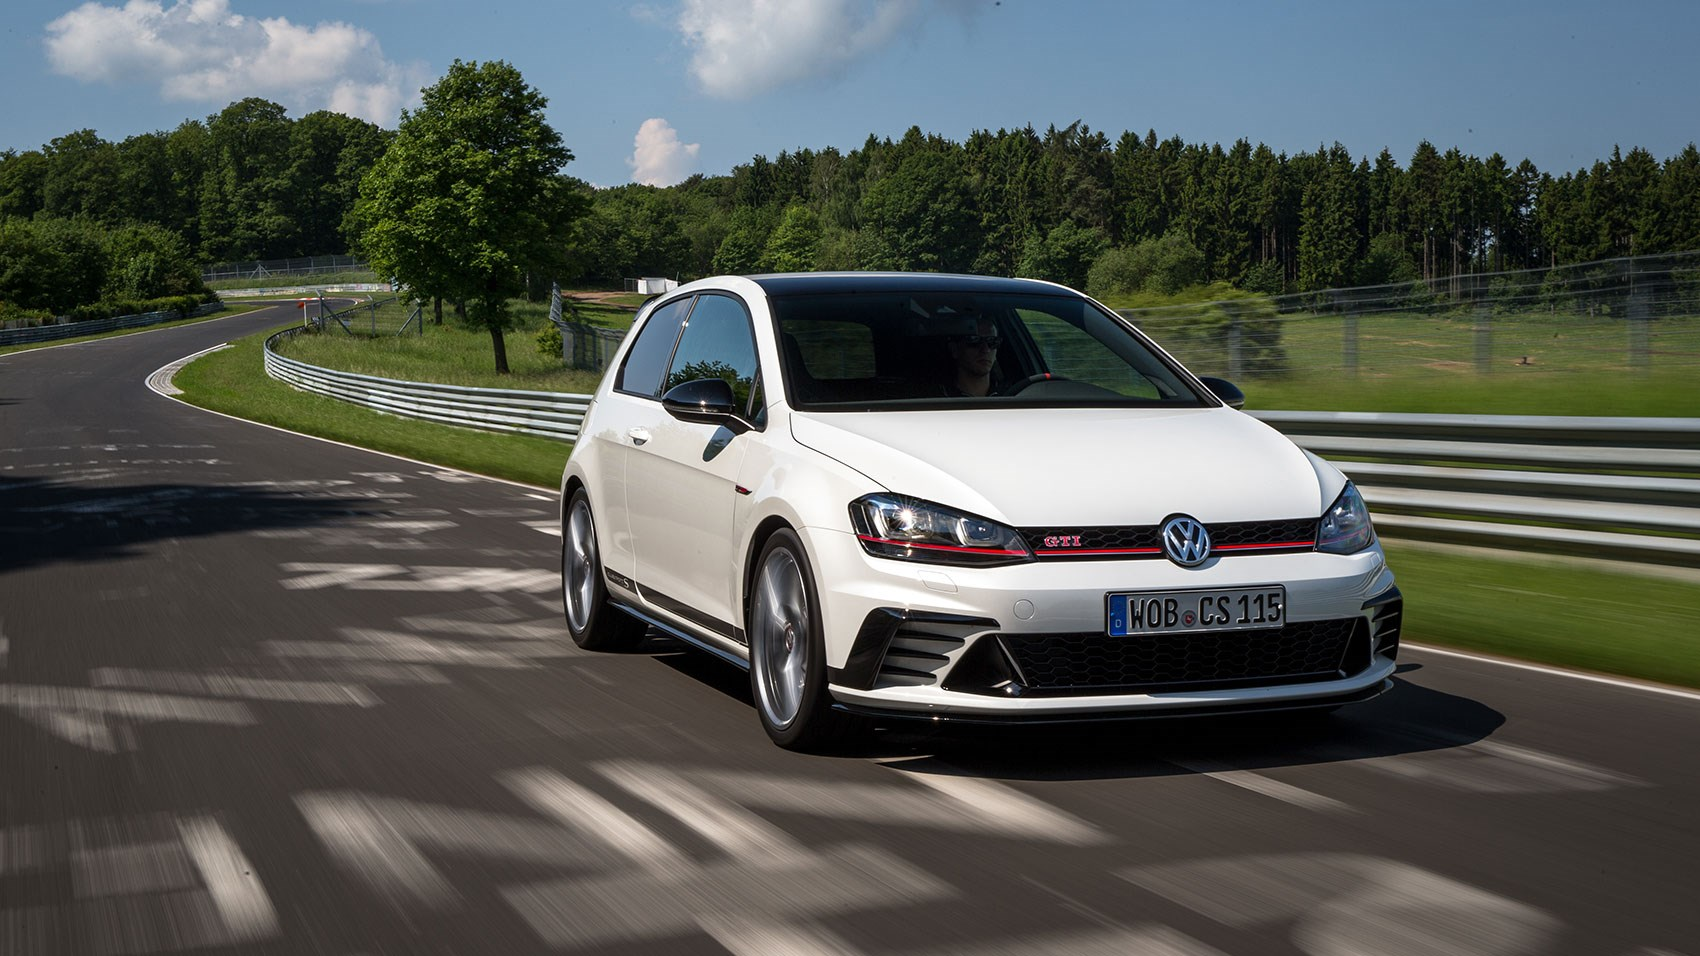 vw golf gti clubsport s 2016 review car magazine. Black Bedroom Furniture Sets. Home Design Ideas